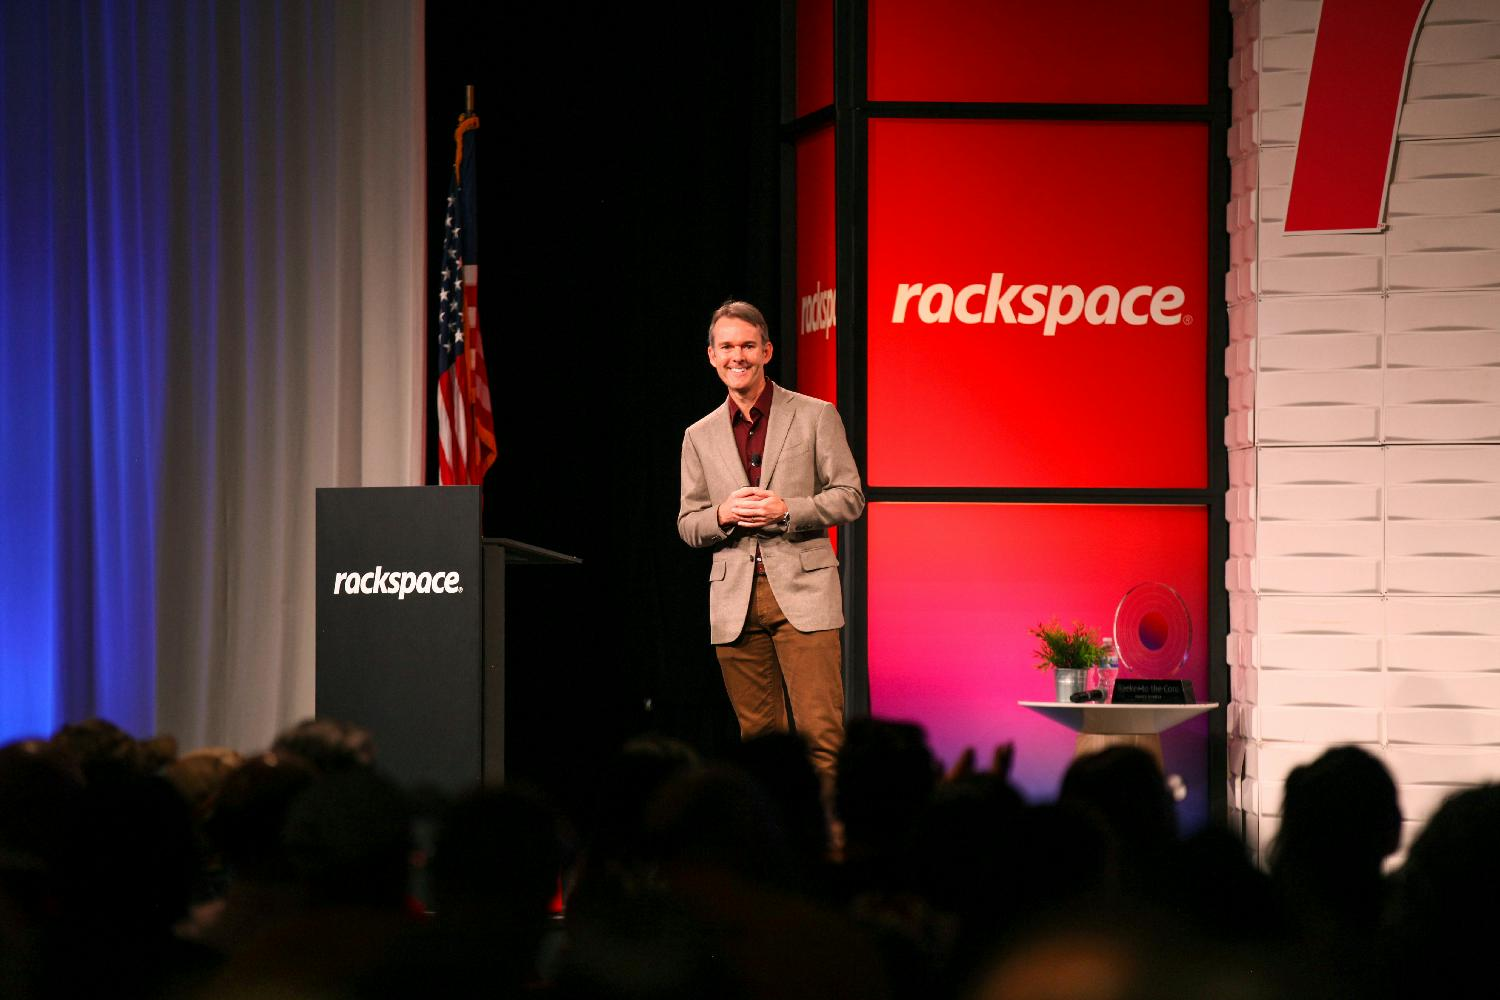 Rackspace - Great Place To Work United States